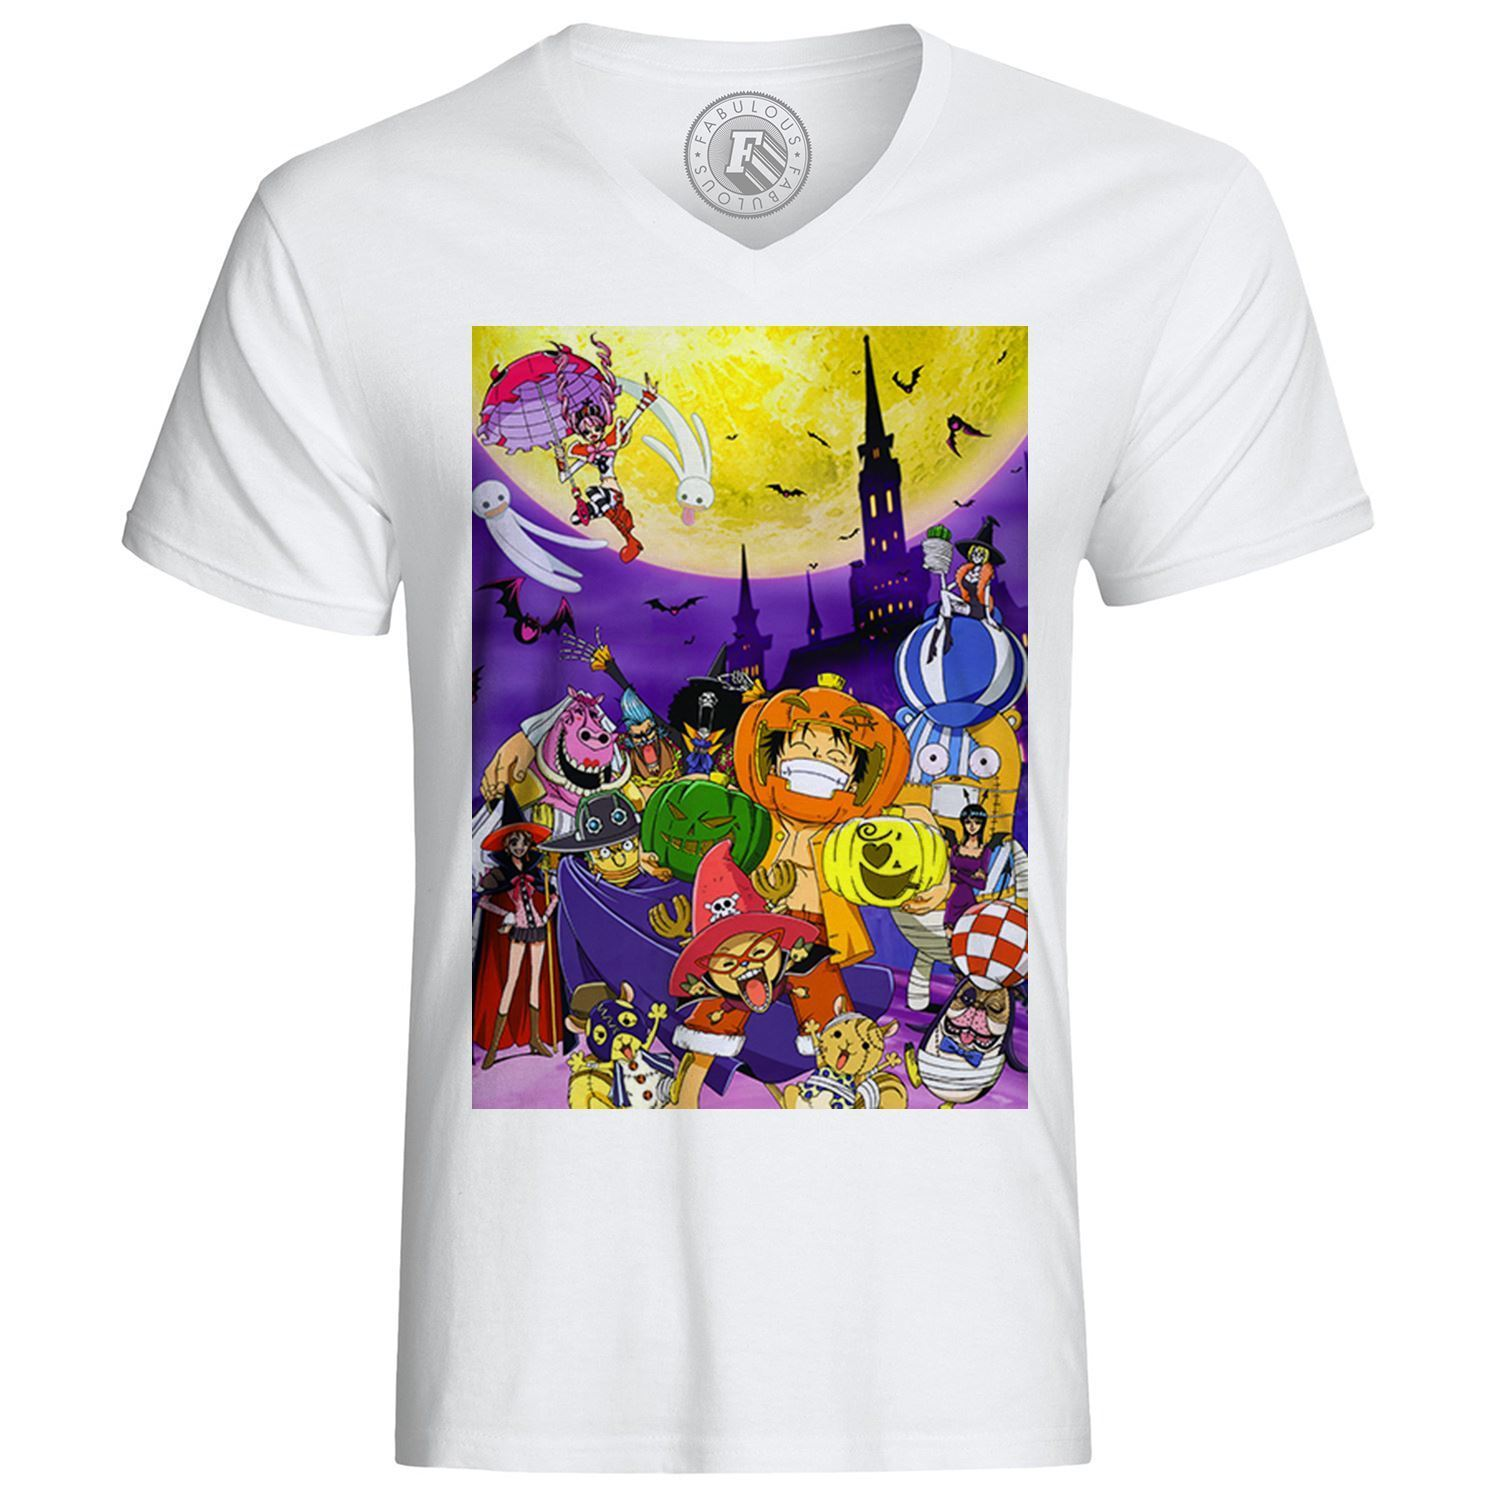 T-shirt one piece thiller bark arc manga luffy pirates- show original title Tee Shirt Casual Short Sleeve image